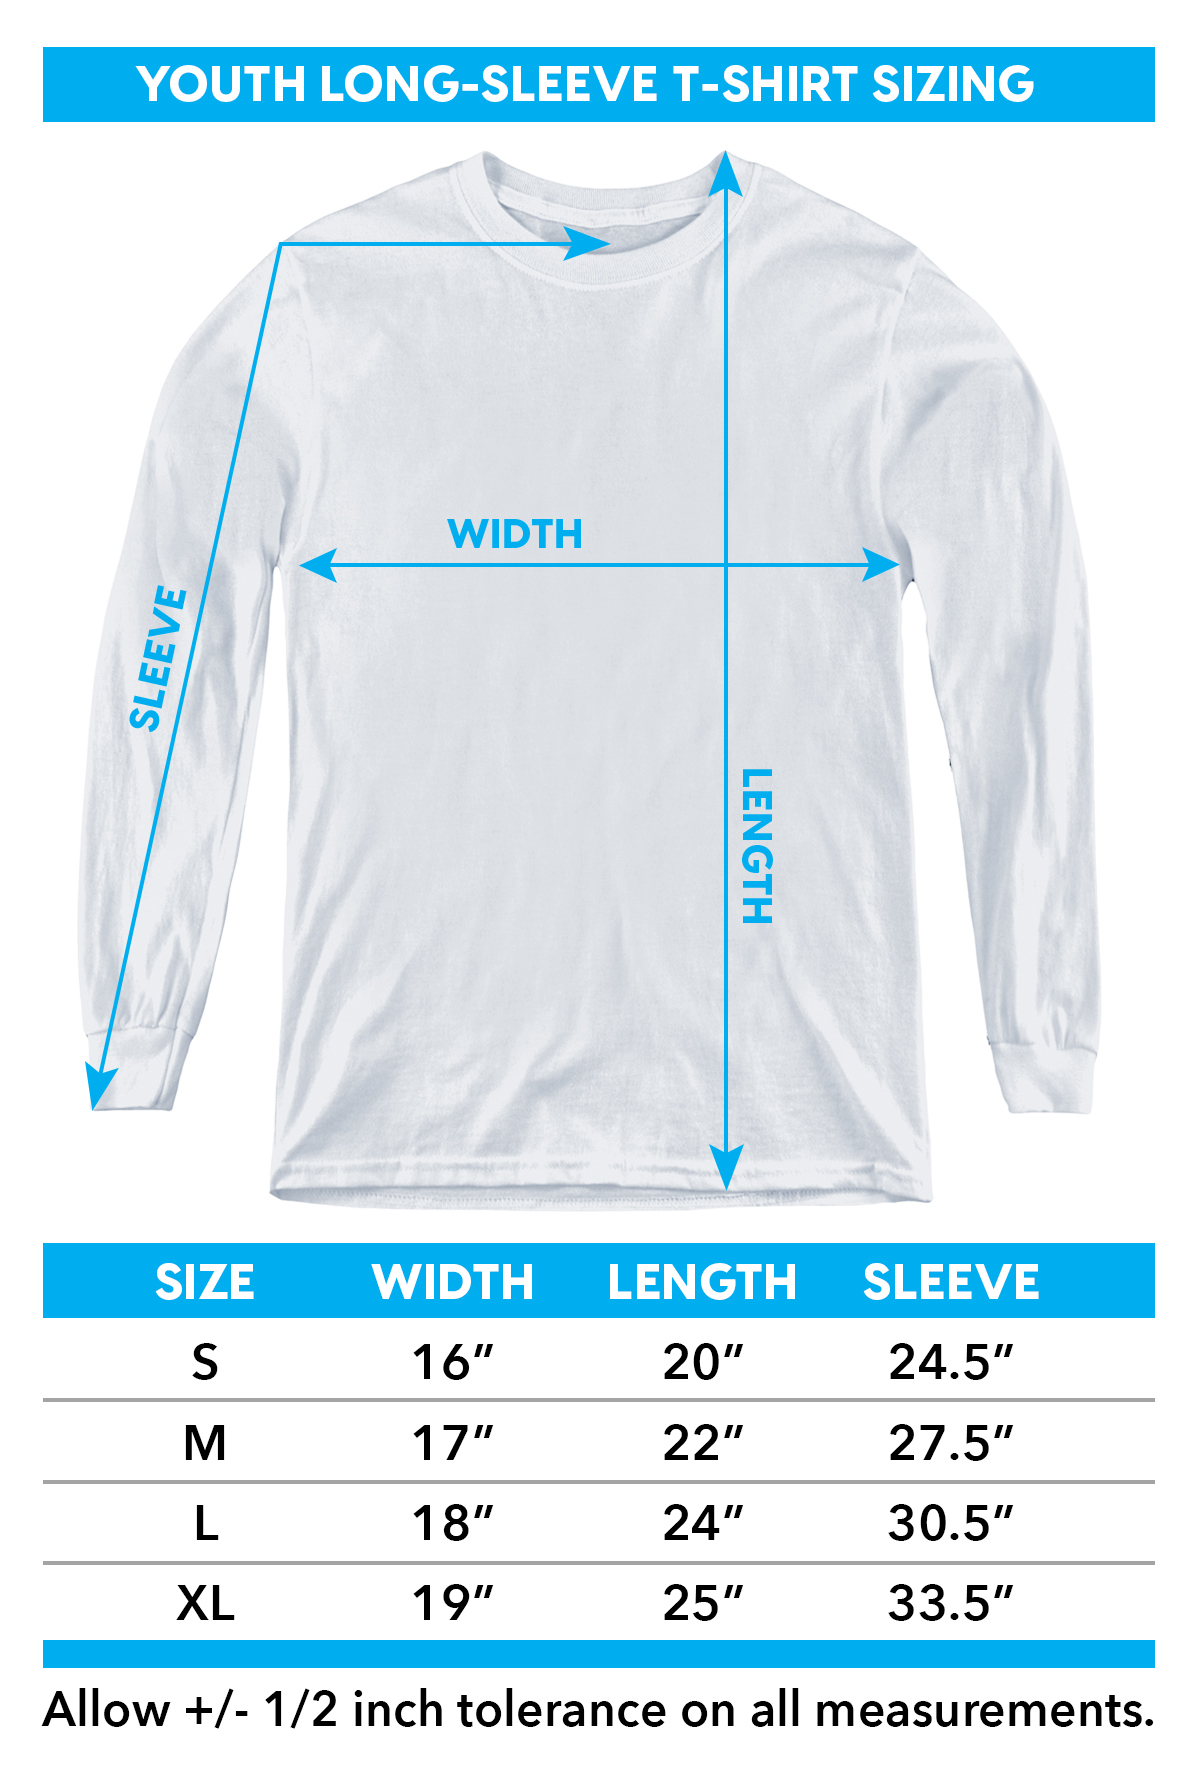 Sizing chart for Rai Youth Long Sleeve T-Shirt - Sword Drawn TRV-VAL175-YT